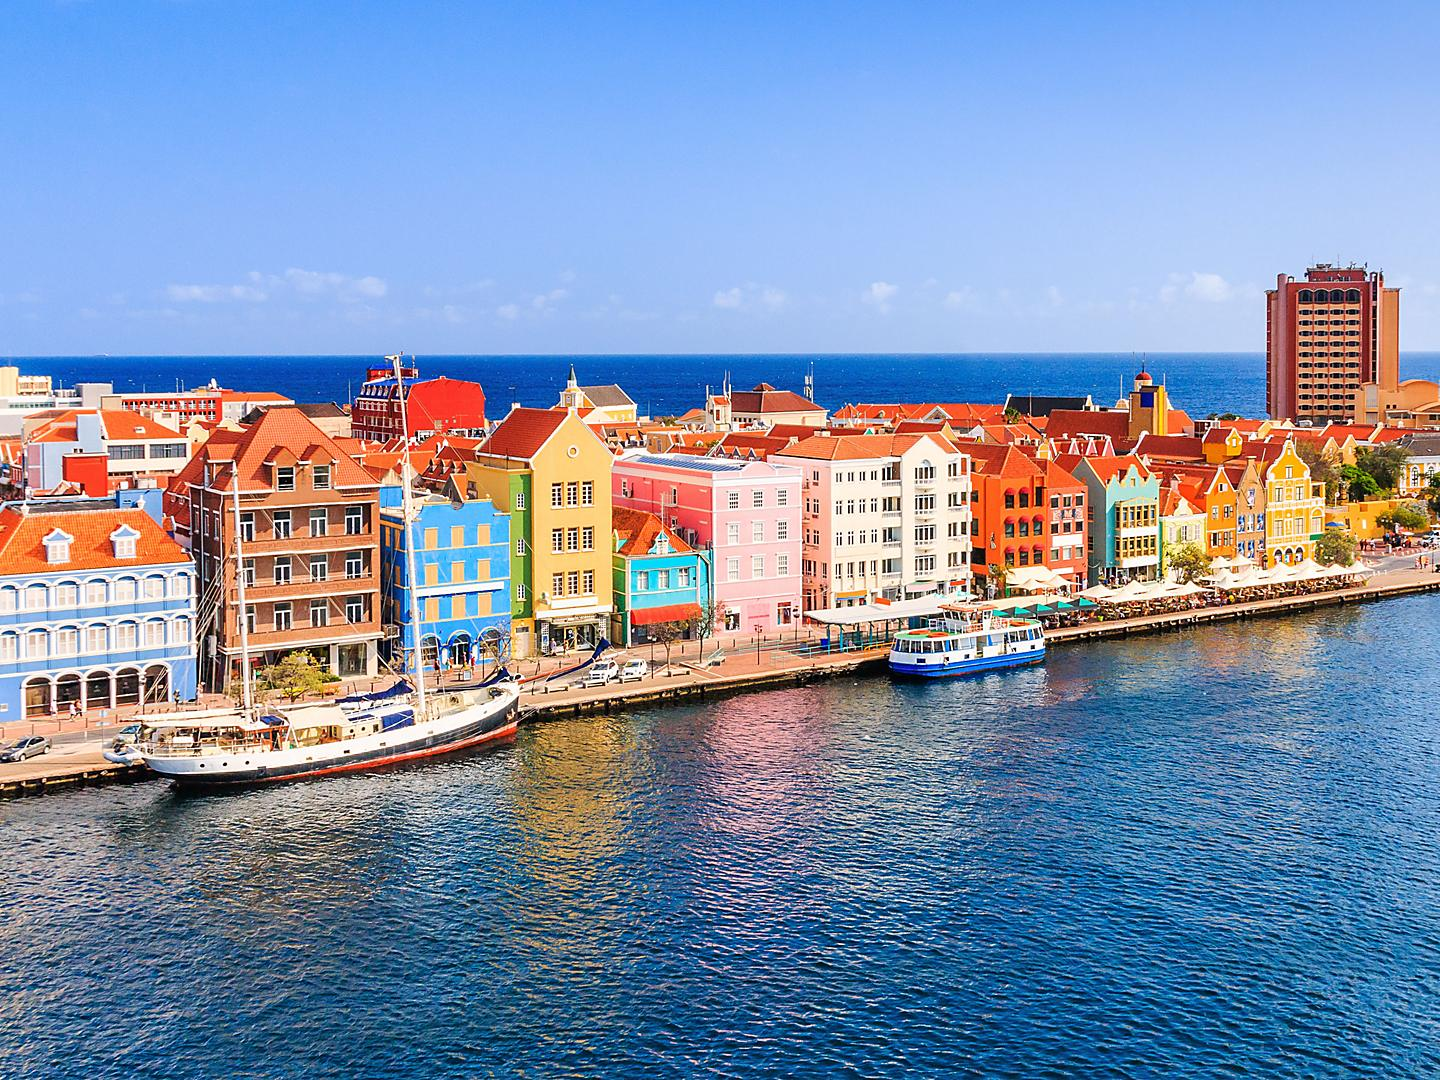 Willemstad, Curacao, Colorful Buildings